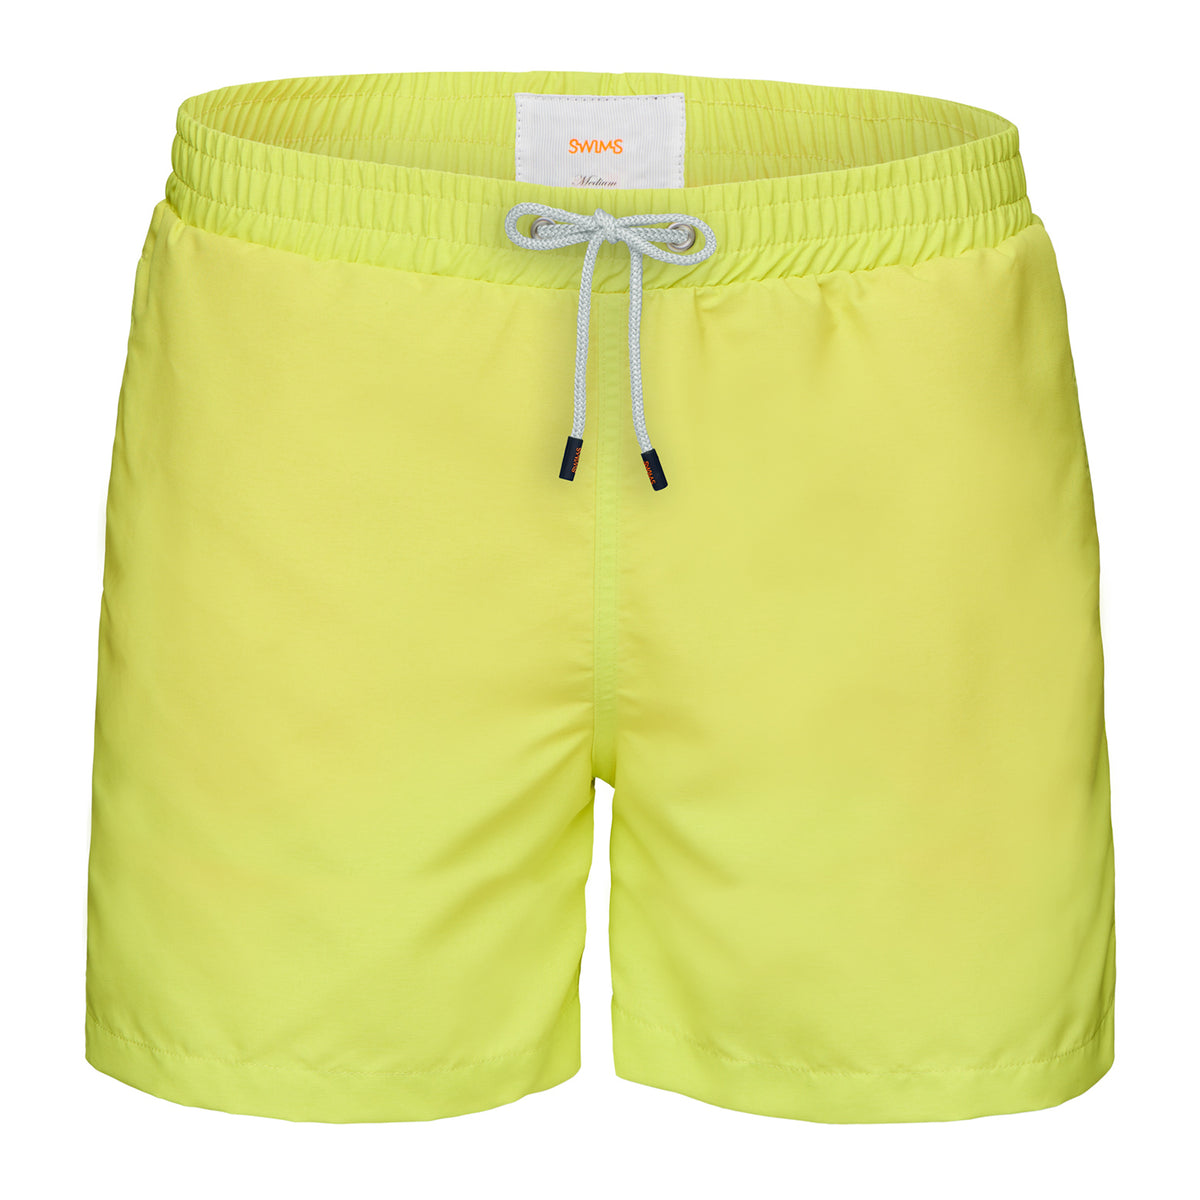 Breeze Swimshort Long - background::white,variant::Limeade